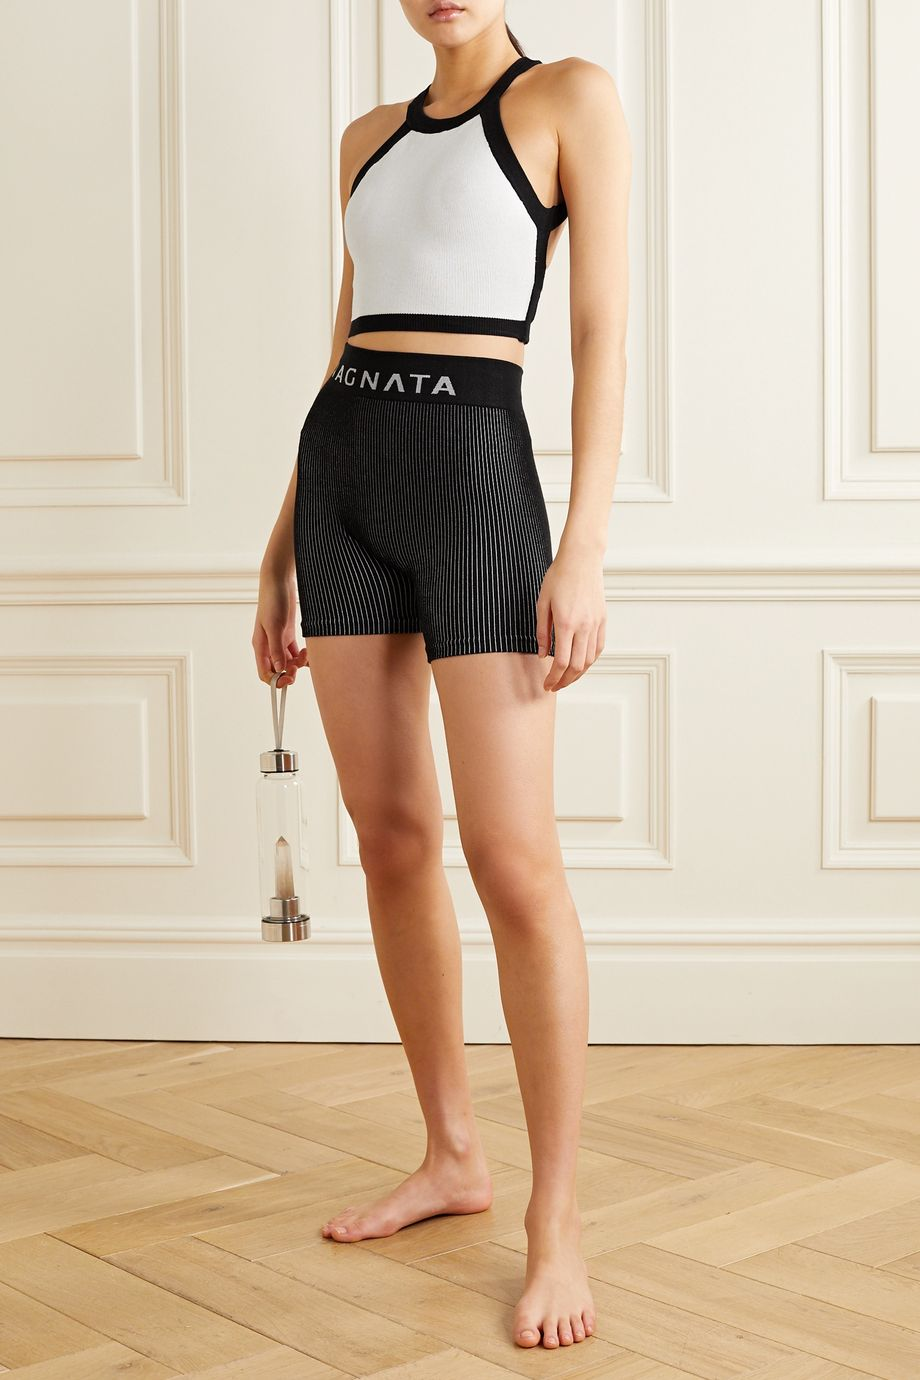 Nagnata + NET SUSTAIN cropped open-back technical stretch-organic cotton top